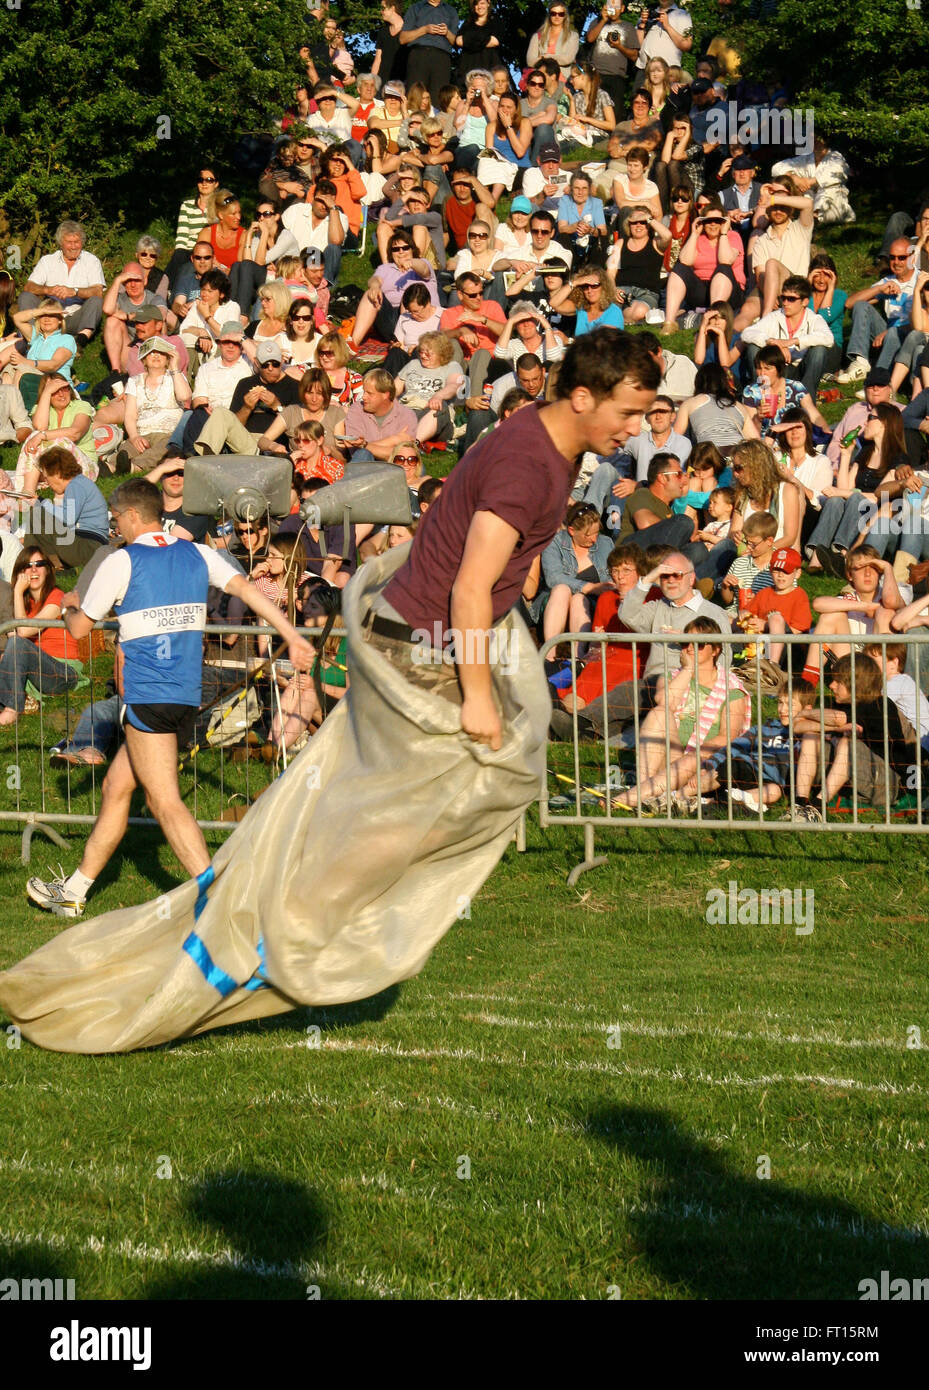 Competitor taking part in sack race - Stock Image